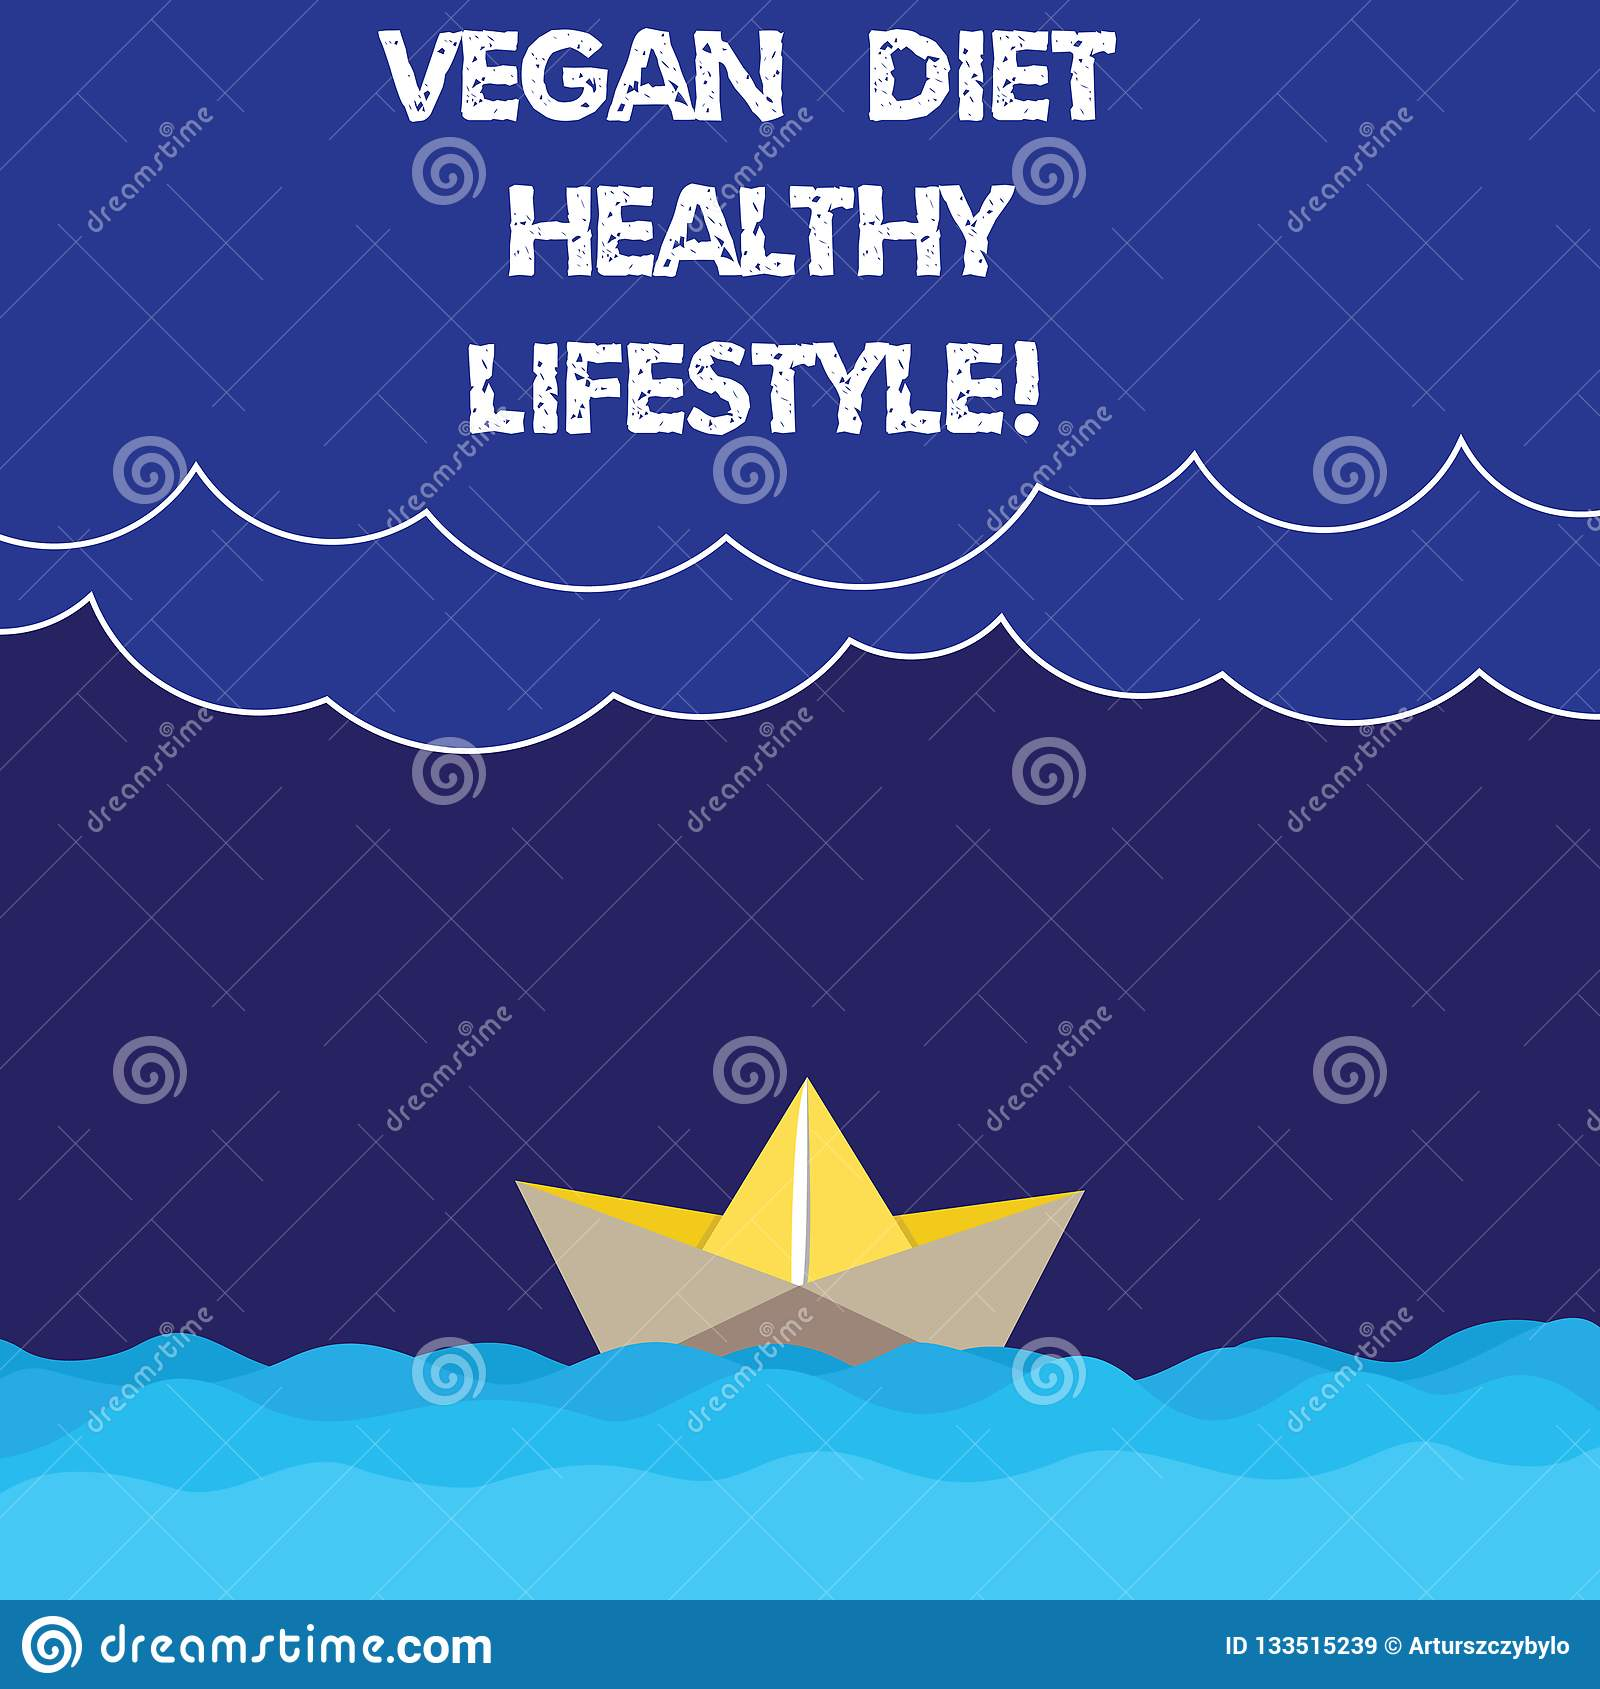 Writing note showing Vegan Diet Healthy Lifestyle. Business photo showcasing Healthy lifestyle eating vegetables and